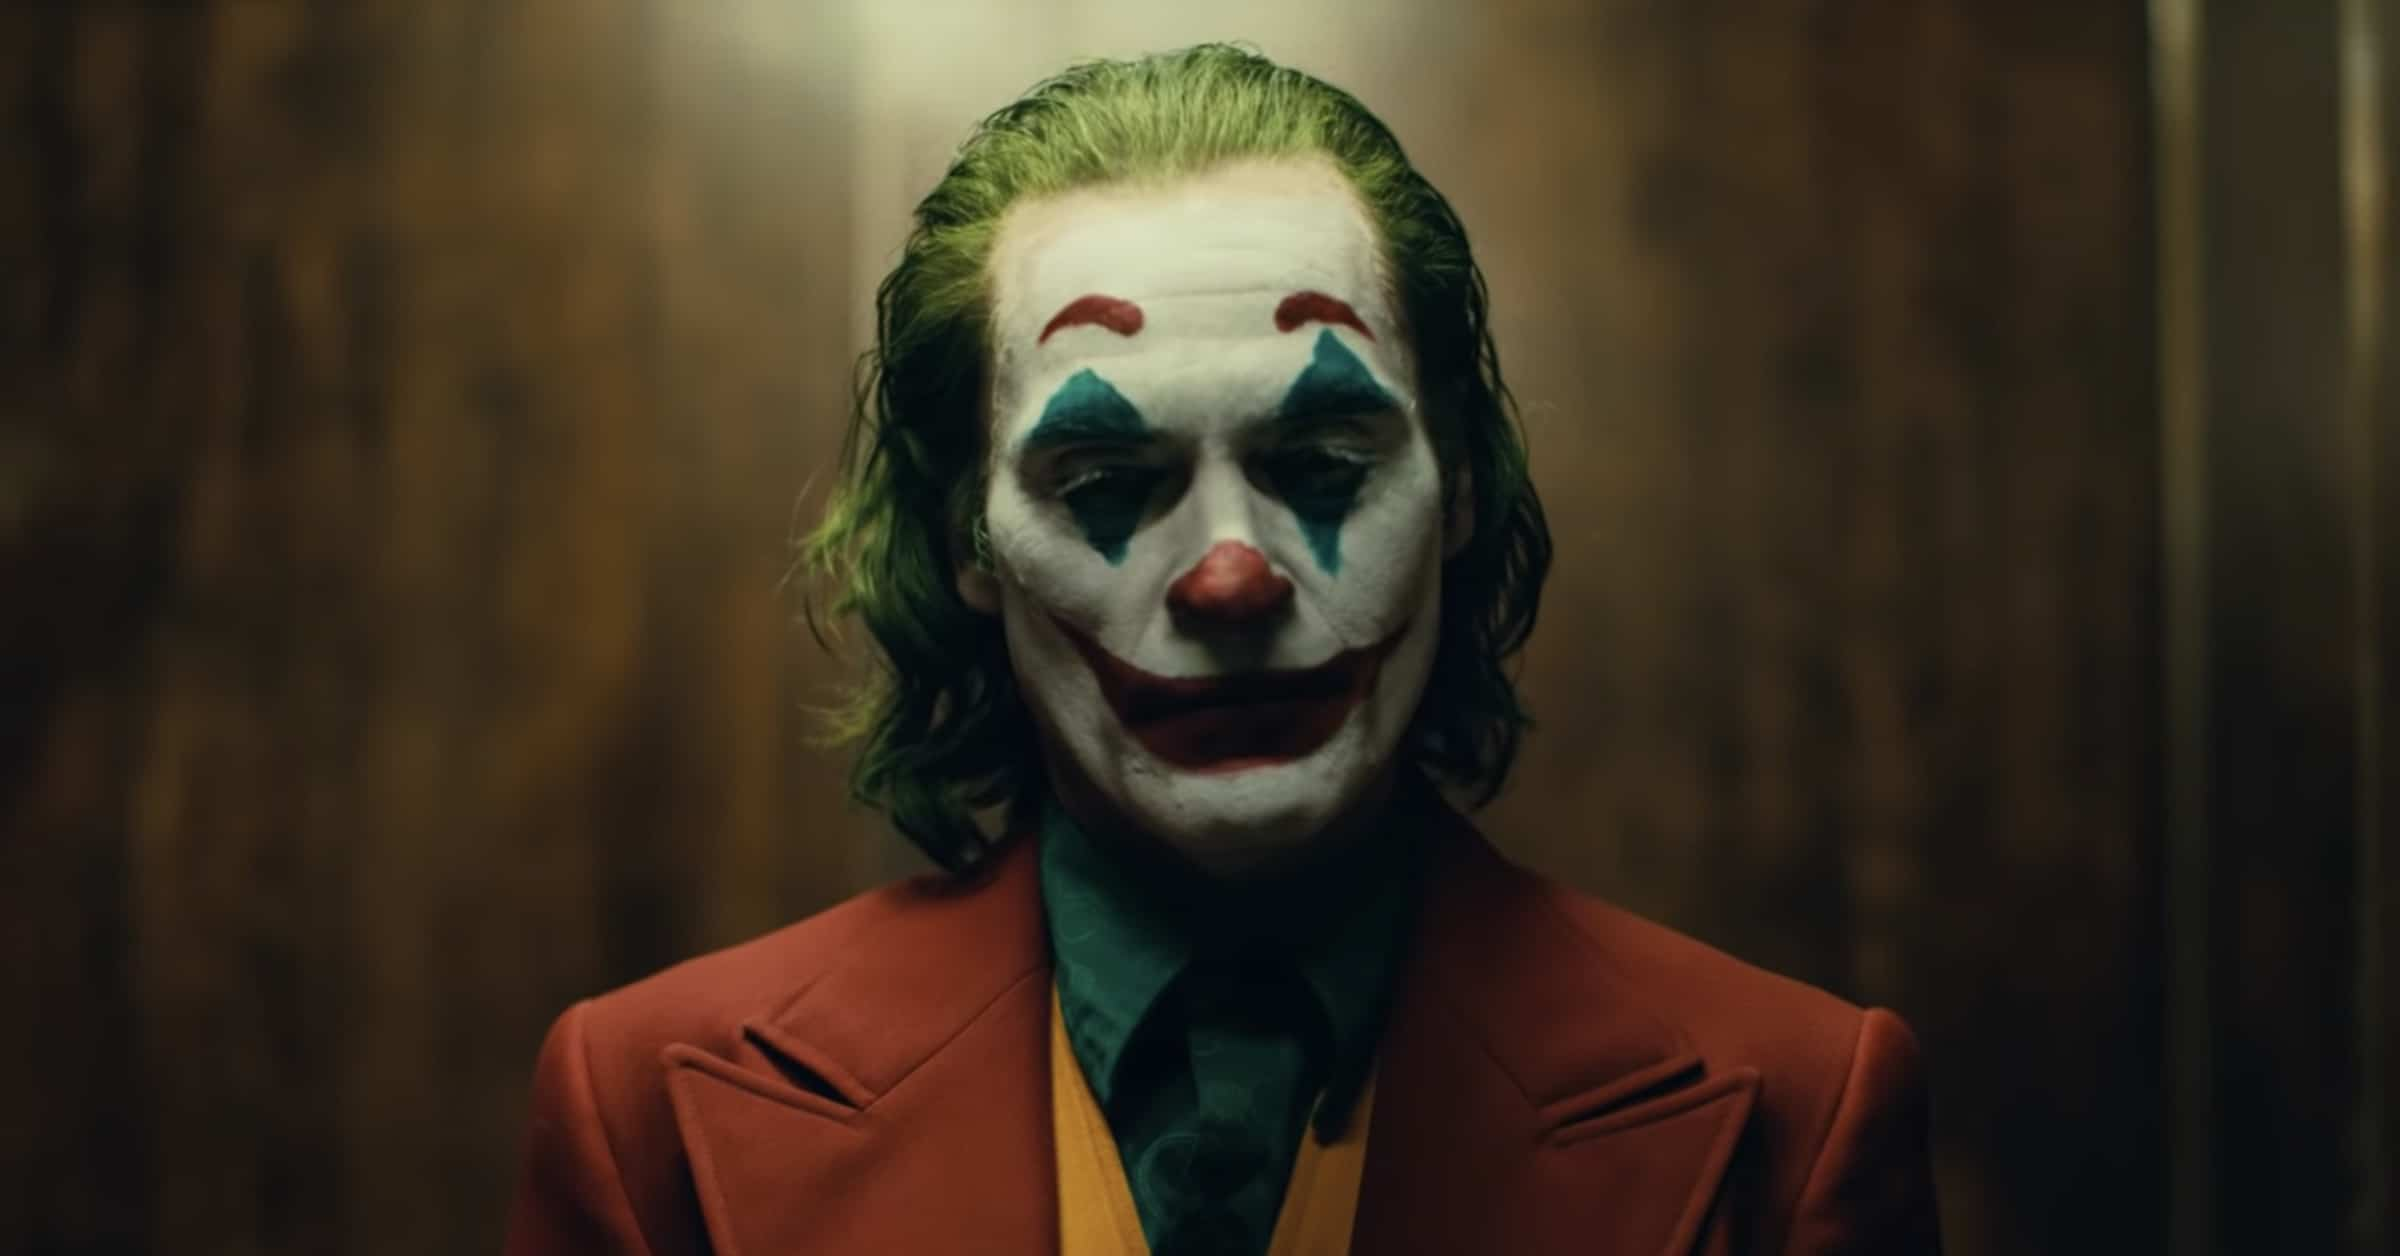 jokerbanner - The JOKER Trailer Proves the Movie is Not What You'd Expect